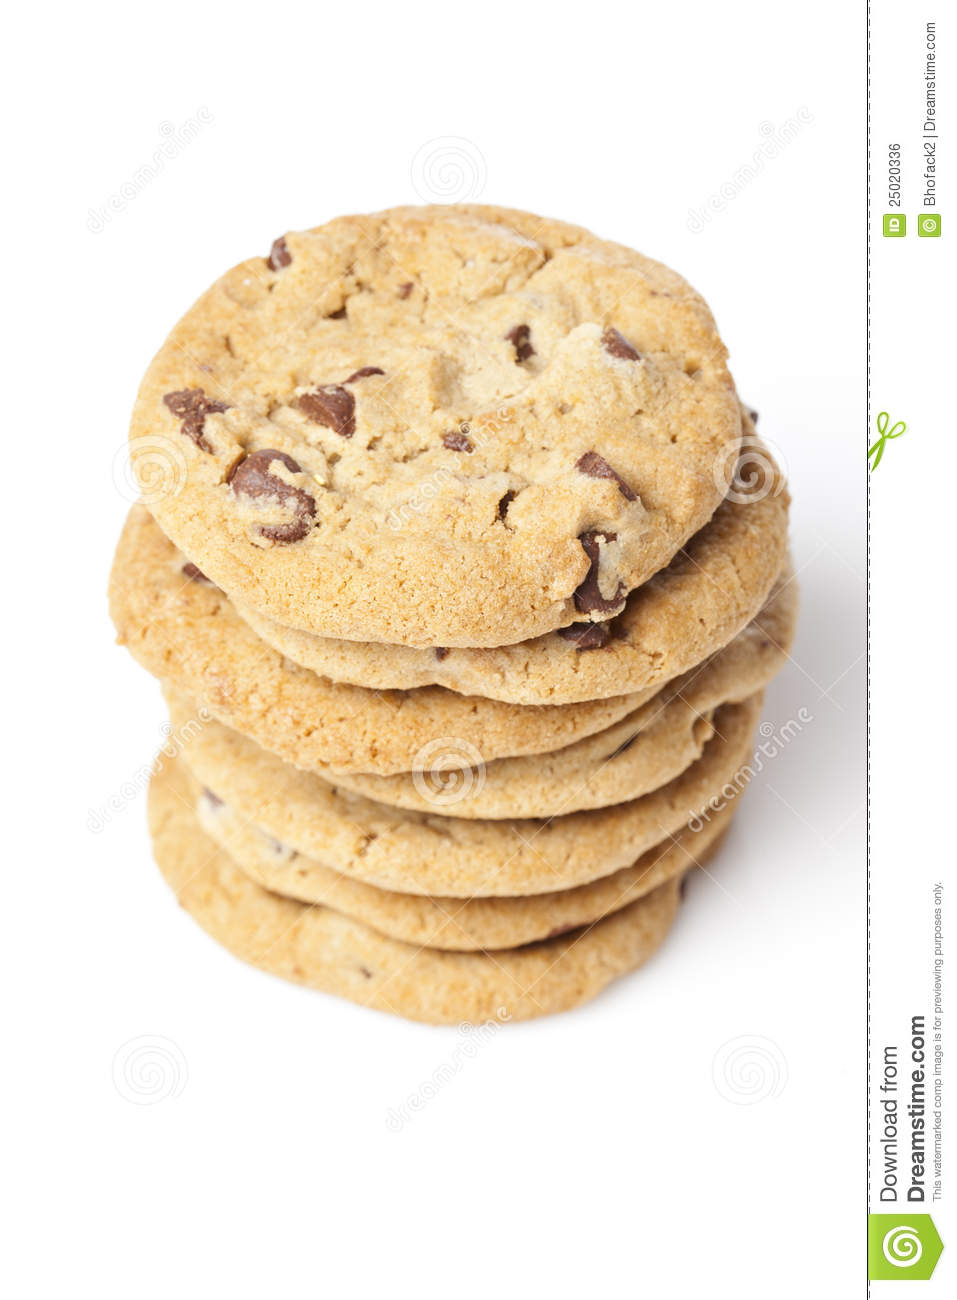 fresh chocolate chip cookies royalty free stock image